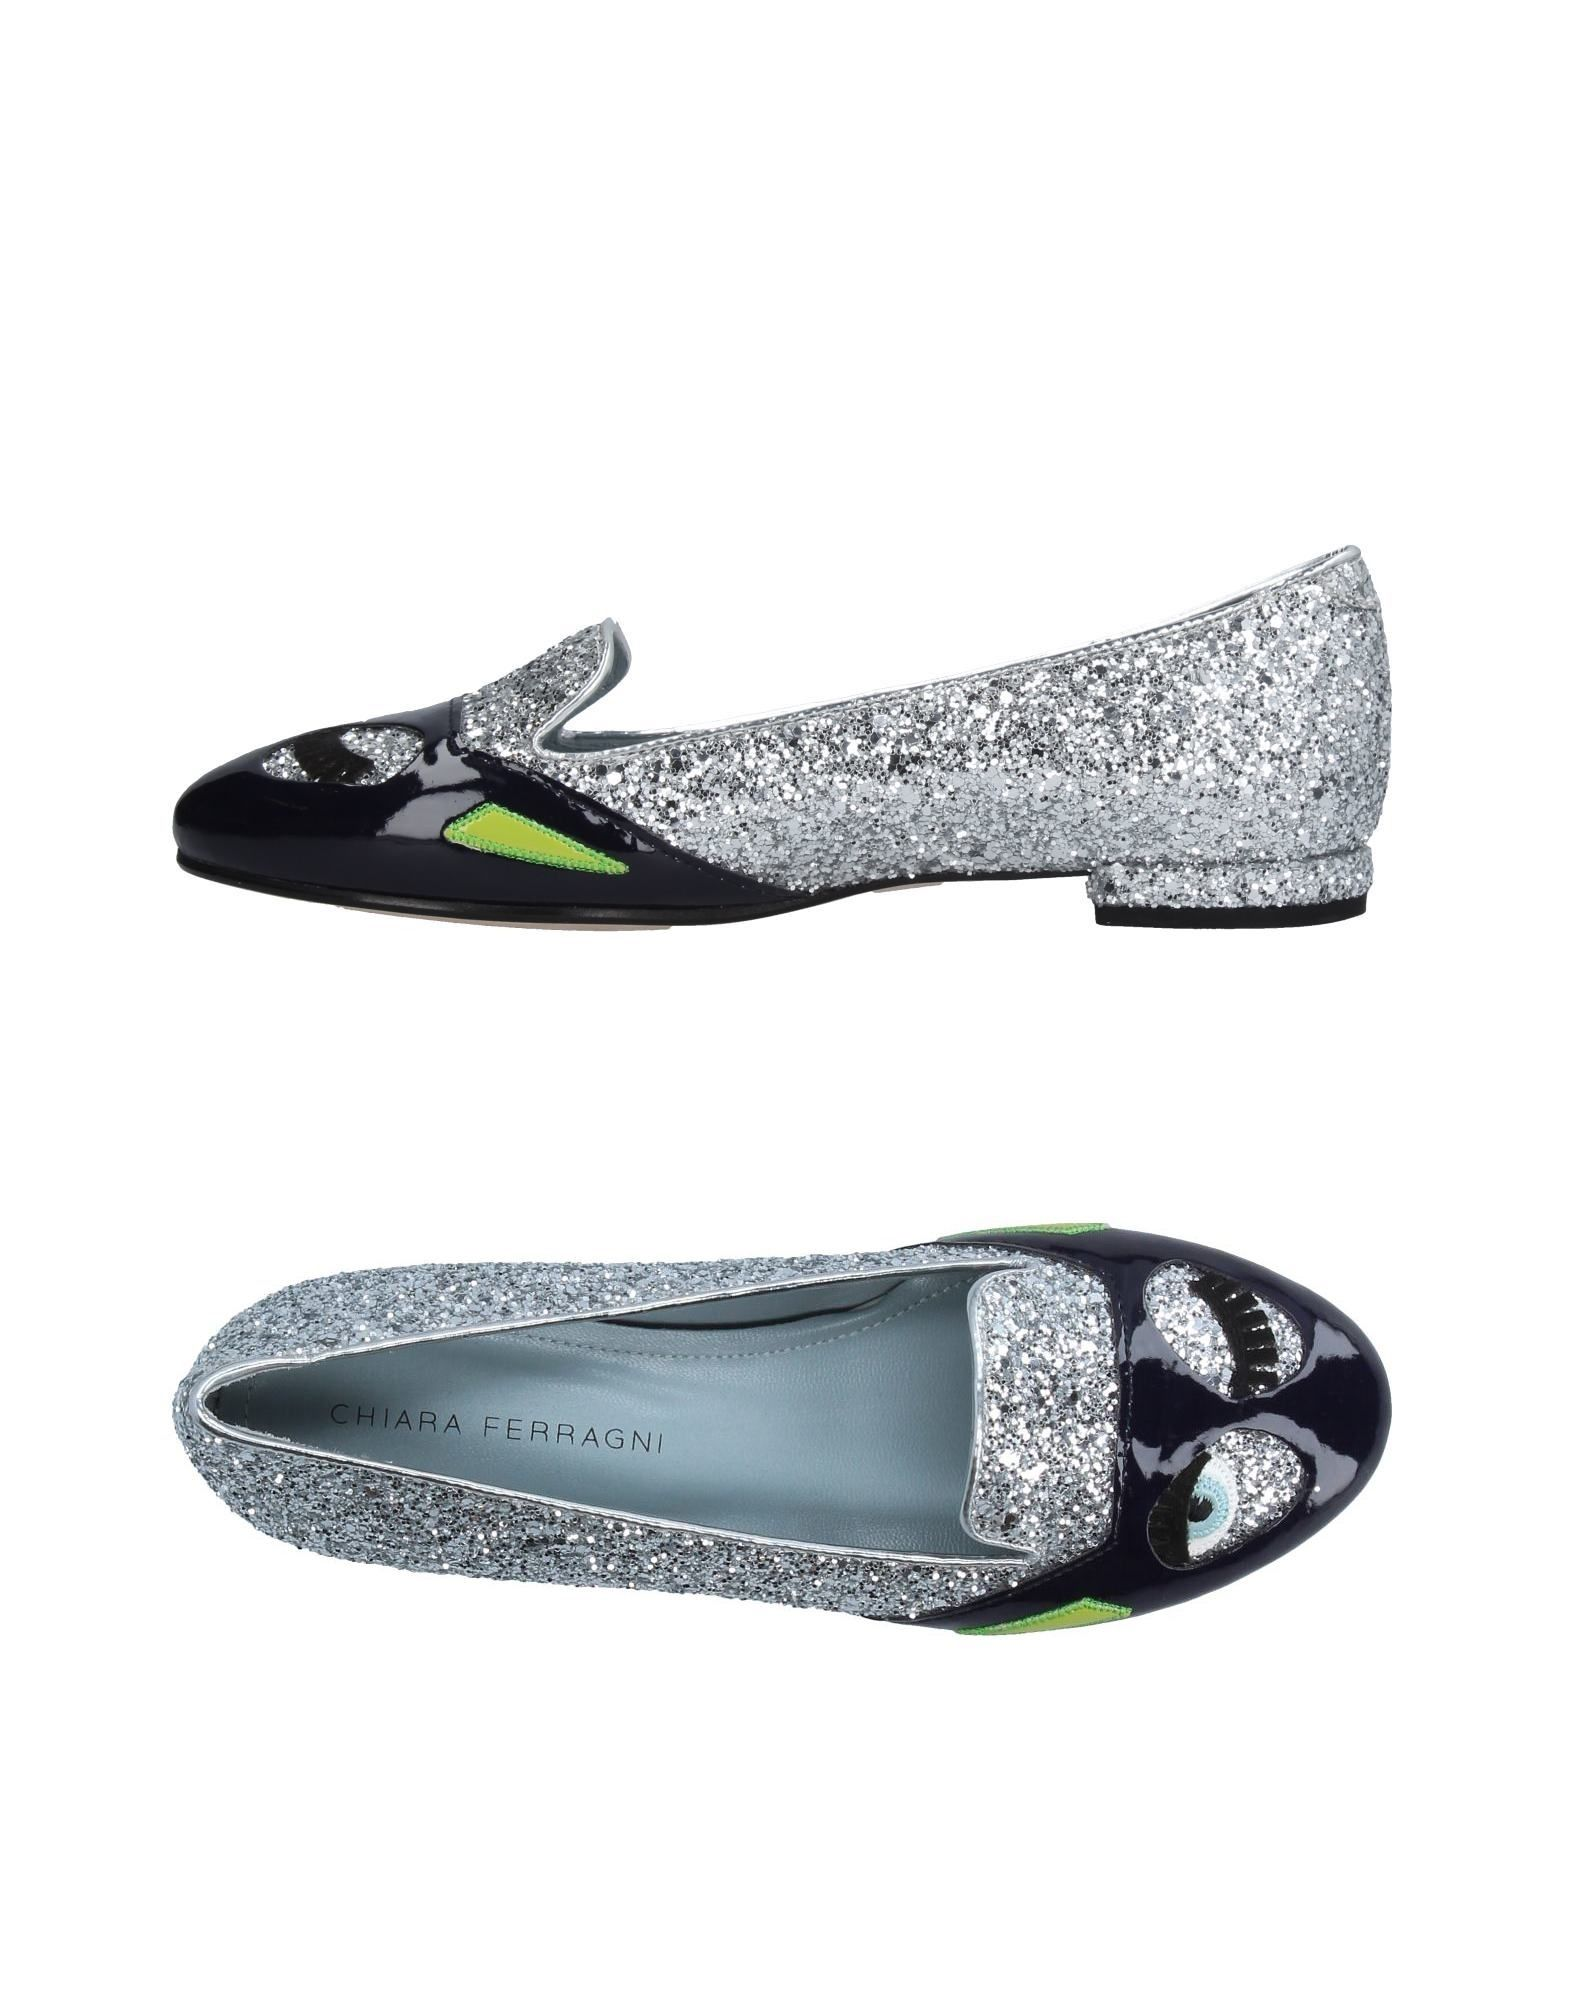 Chiara Ferragni Loafers - Women on Chiara Ferragni Loafers online on Women  Australia - 11212888DC 87c246